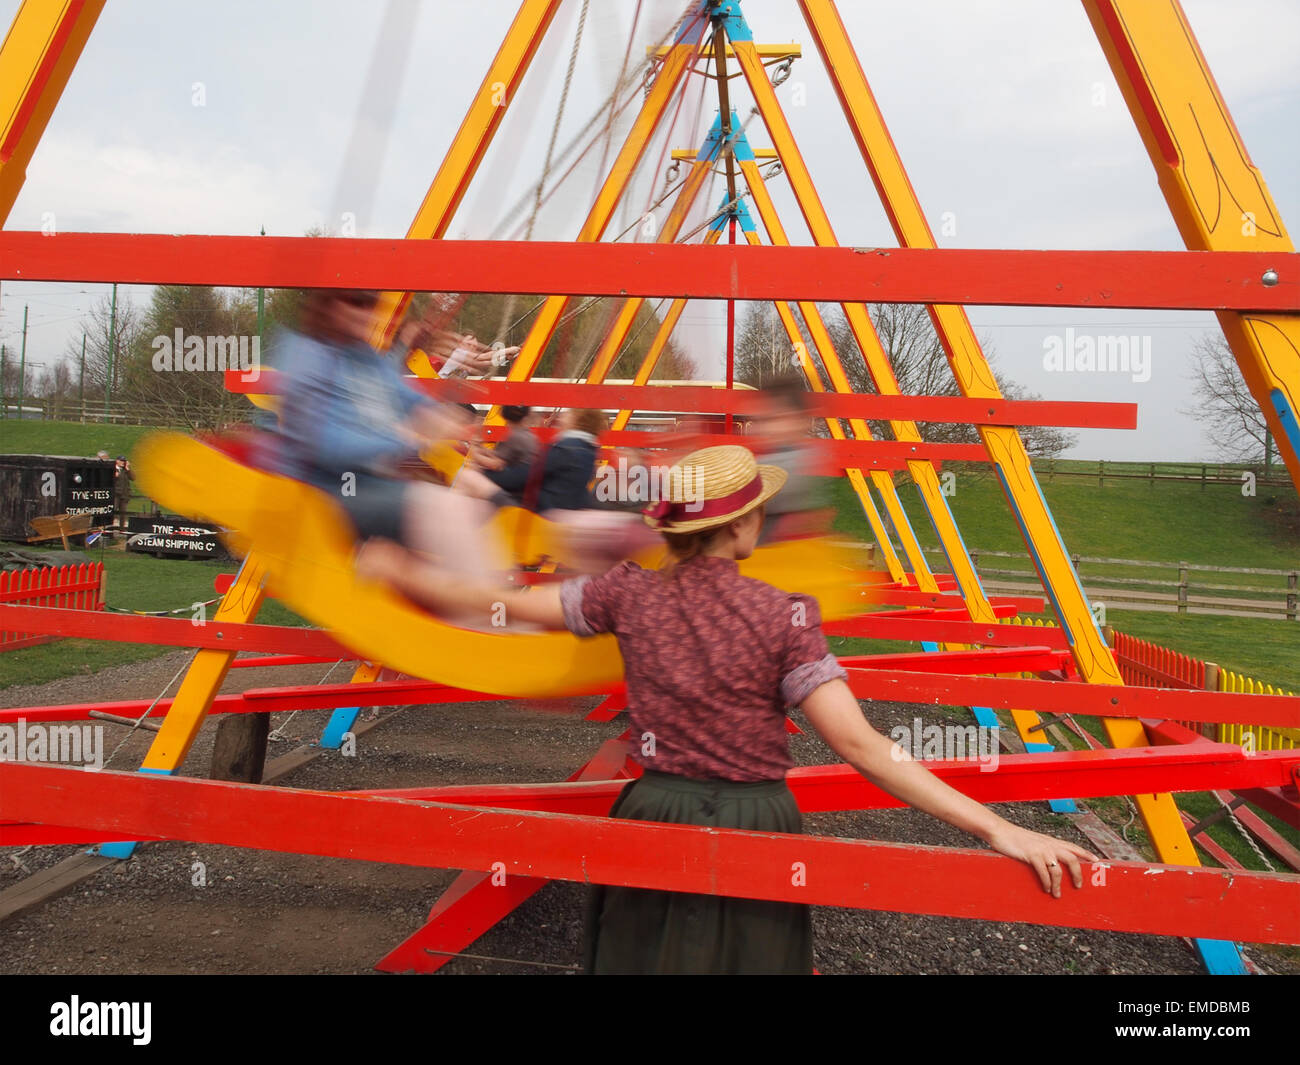 Old fashioned fairground swings at Beamish Open Air Museum in Co. Durham, England. - Stock Image